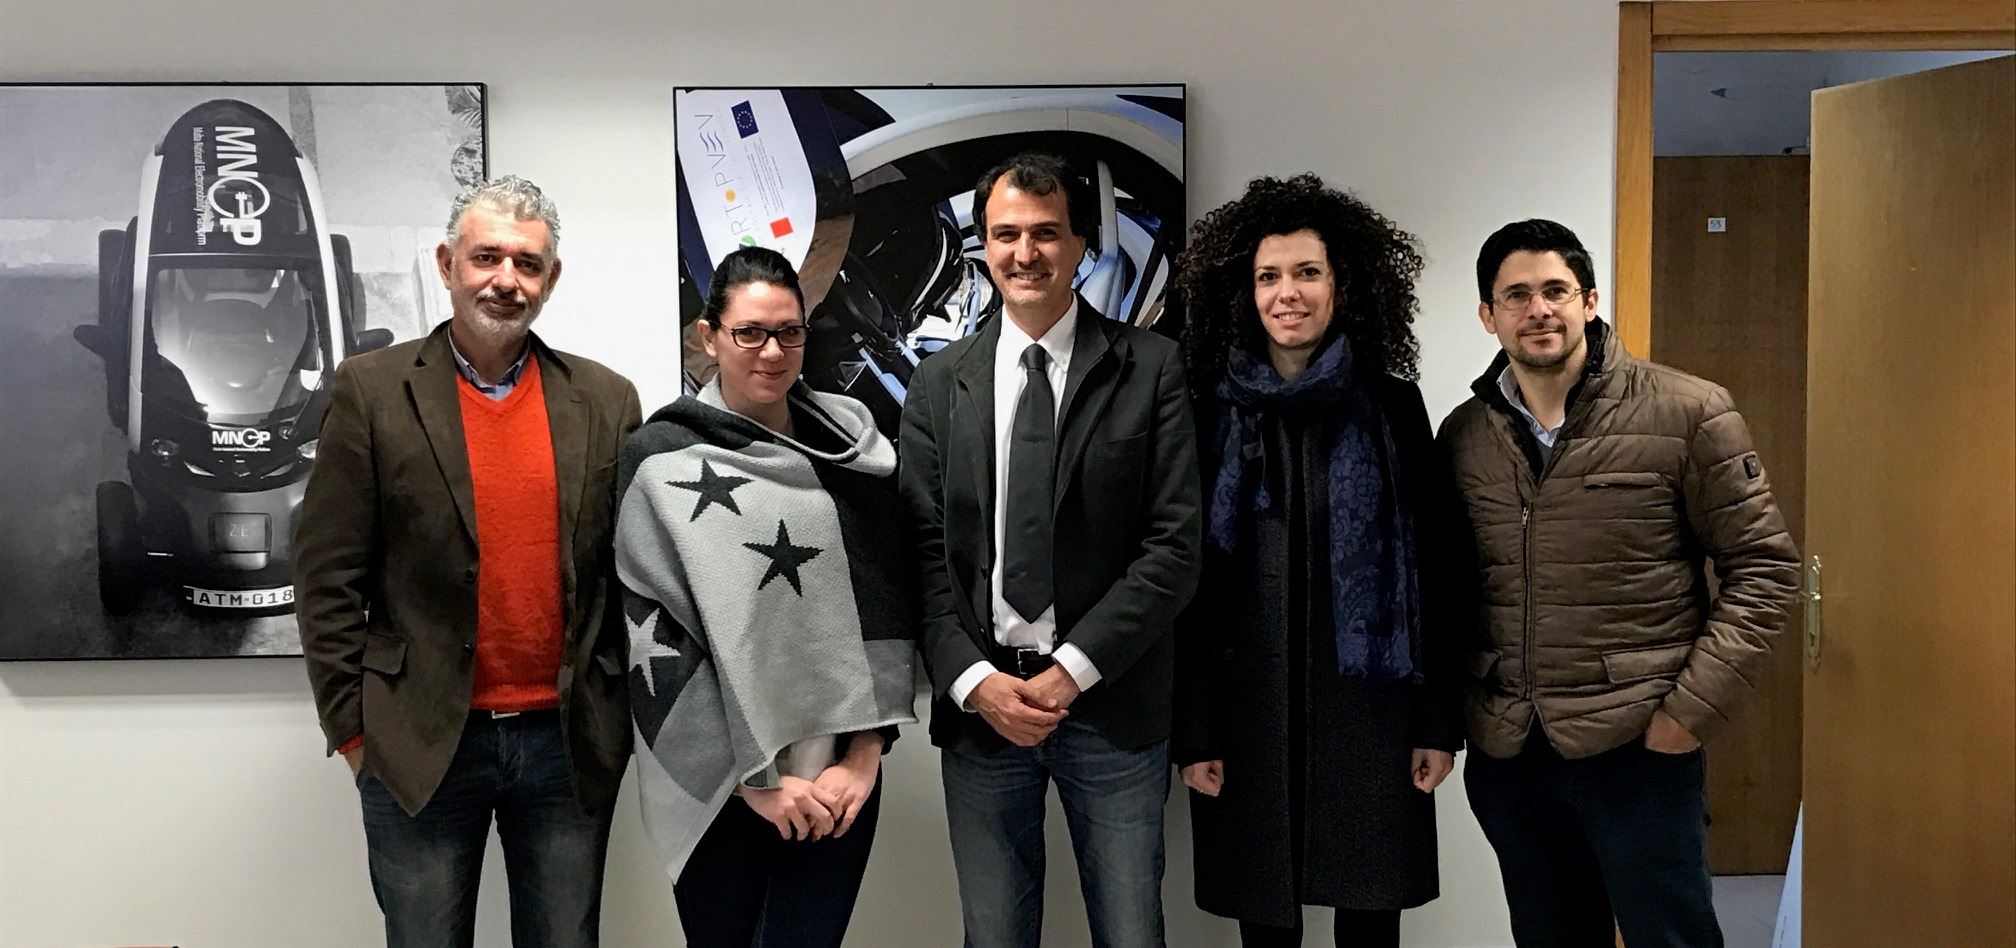 Delivering the first part of SMITHS project | from the left: P.P. Barbara, A. Ellul, F. Russo, G. Schippa, P. Brincat